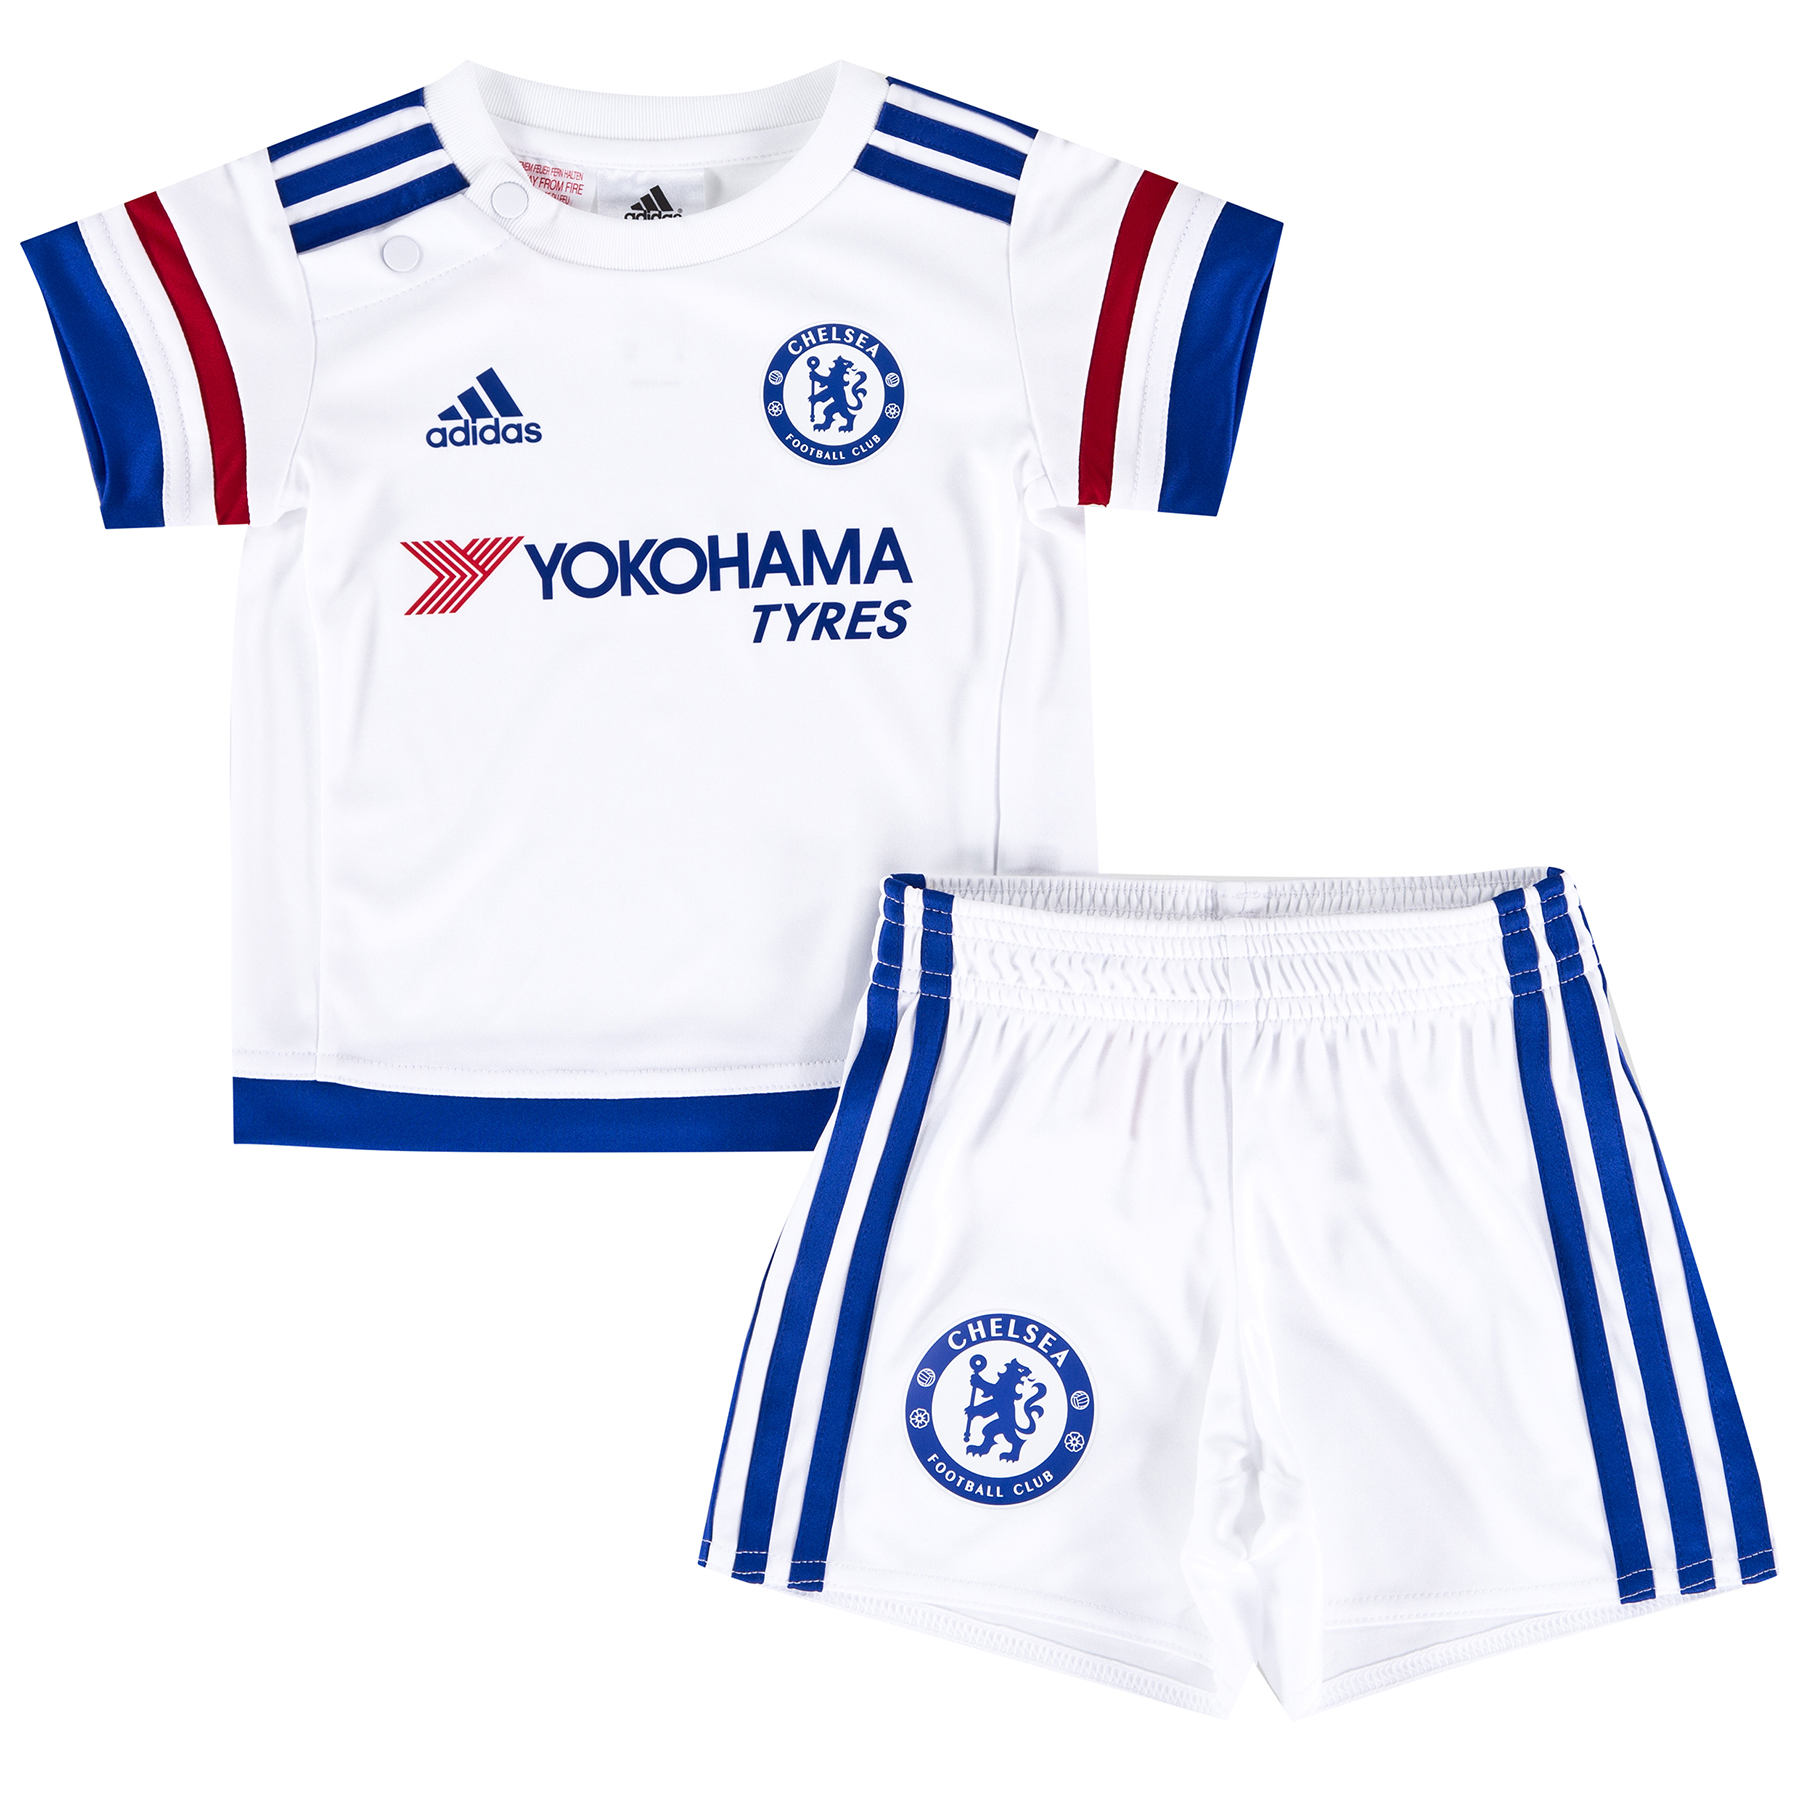 Chelsea  Away Baby Kit 2015/16 Even the youngest of fans can show their support for their favourite club with the new Chelsea Away Baby Kit for the 2015/16 season. The CFC Away KitThe Away Kit mirrors the colour story of the Home Kit in an unseen way: Red, White and Chelsea Blue stripes on the arms. The fingerprint label adds value and an authentic story whilst the fingerprint represents the identity of all Chelsea fans. Dress your baby in a mini version of the kit worn by the likes of Champions Diego Costa, Cesc Fabregas and Eden Hazard! Benefits CLIMACOOL® Provides heat and moisture management through ventilation. Regular Fit Club crest: heat transfer 100% rec. PES 100% PES